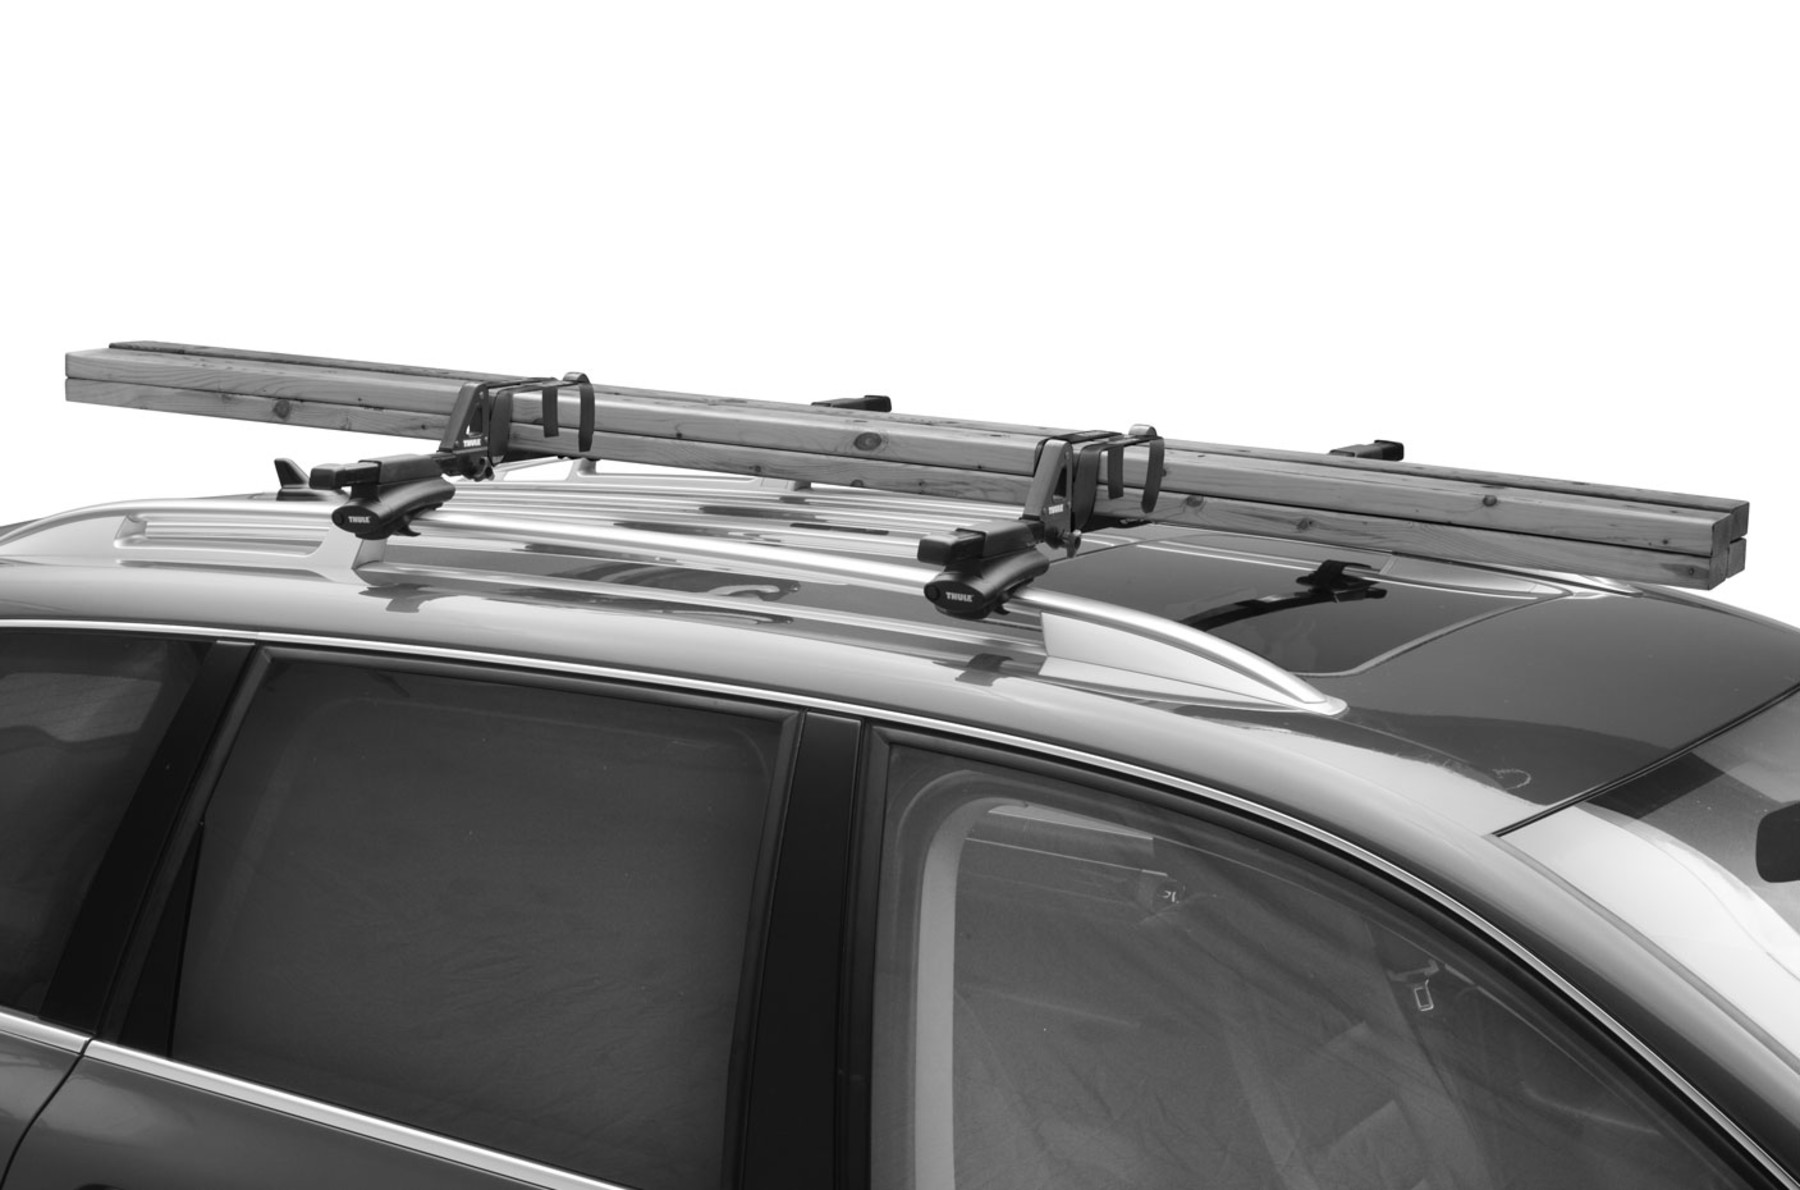 Thule Load Stops 503 on car